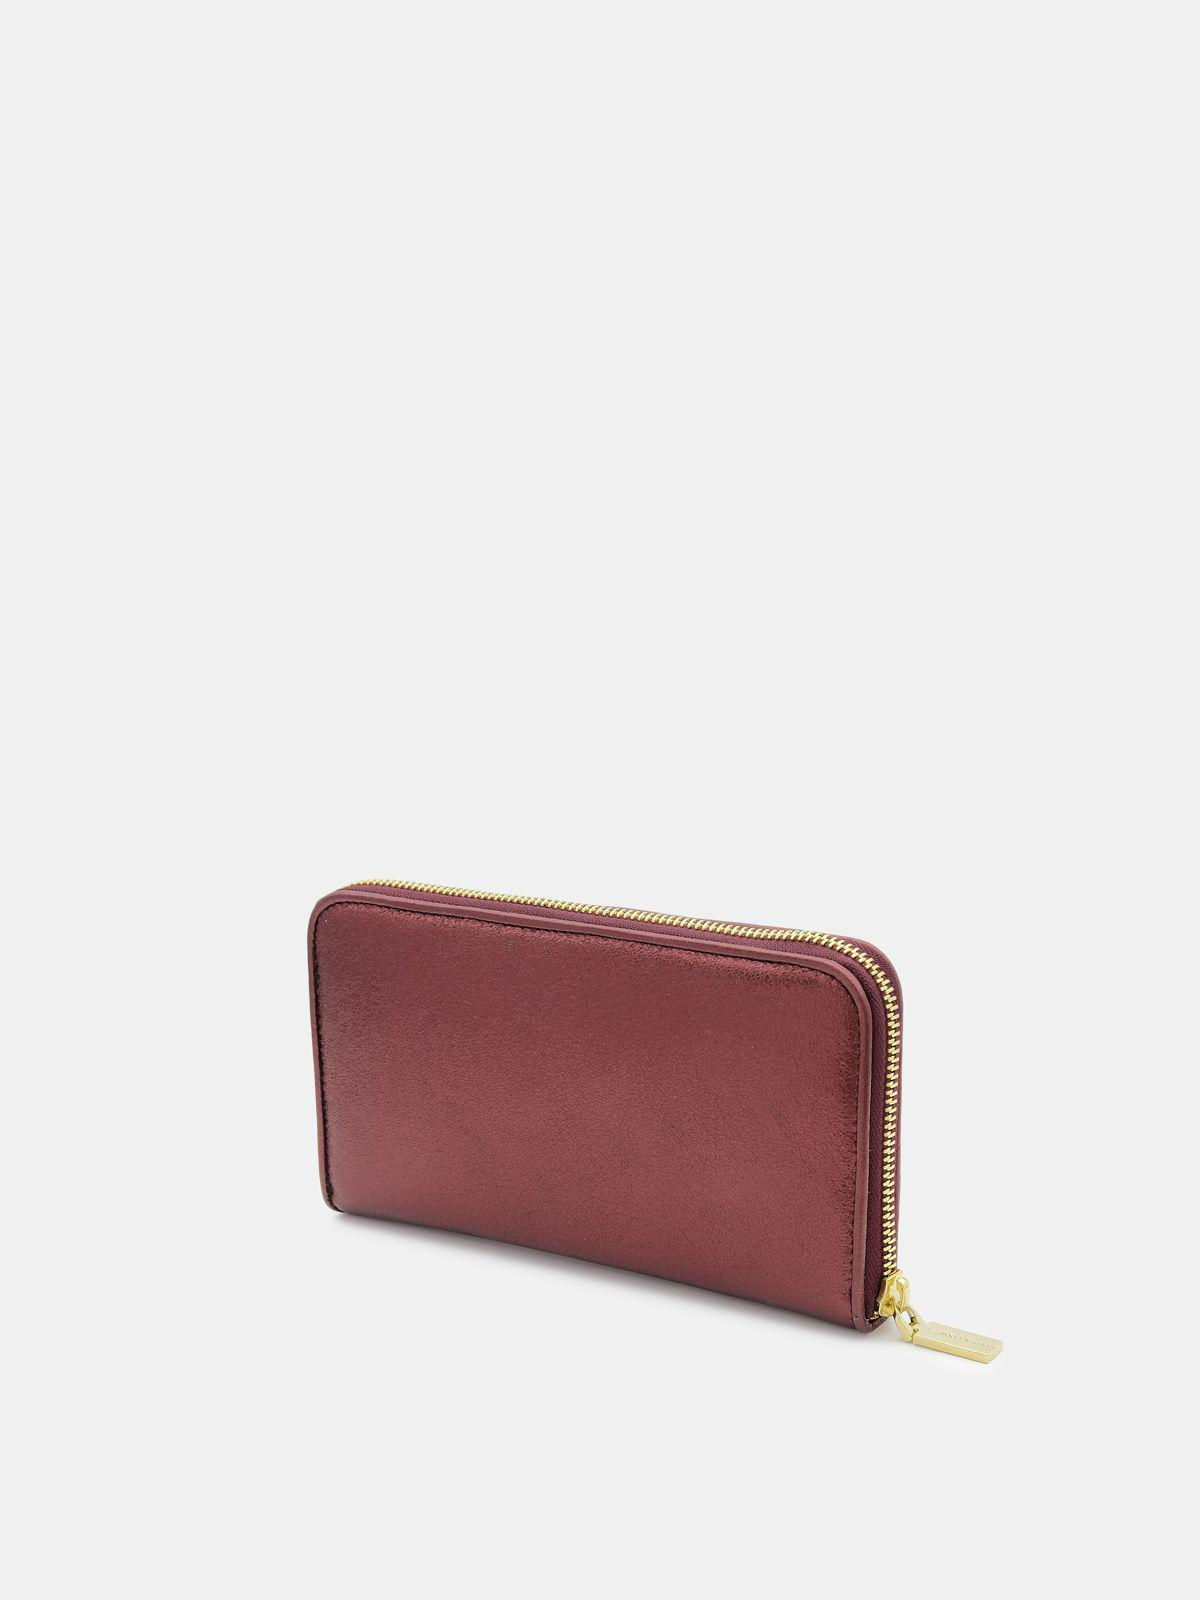 Large burgundy Star Wallet in laminated leather 2